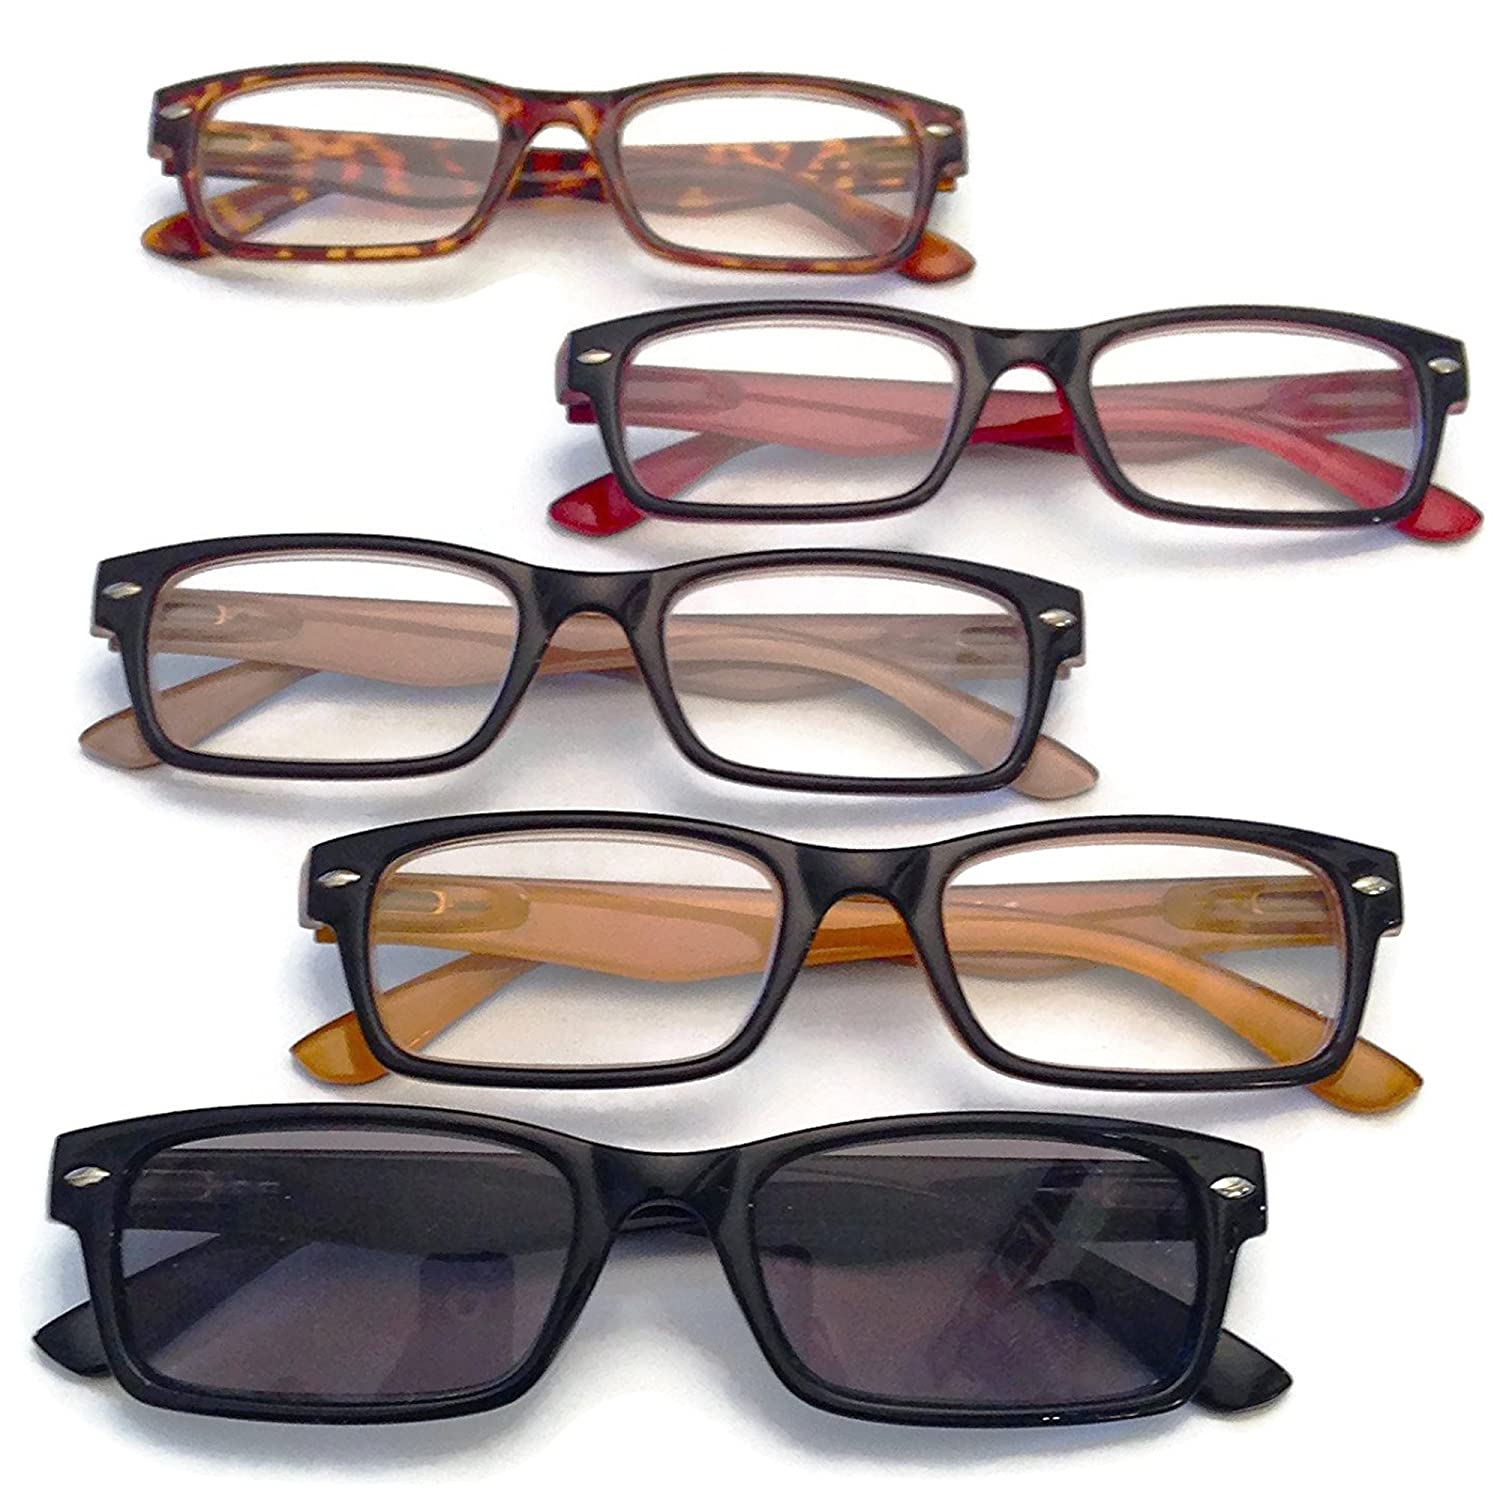 3a3644564261 Improve Your Vision and Quality of LifeOur SightPros reading glasses ...